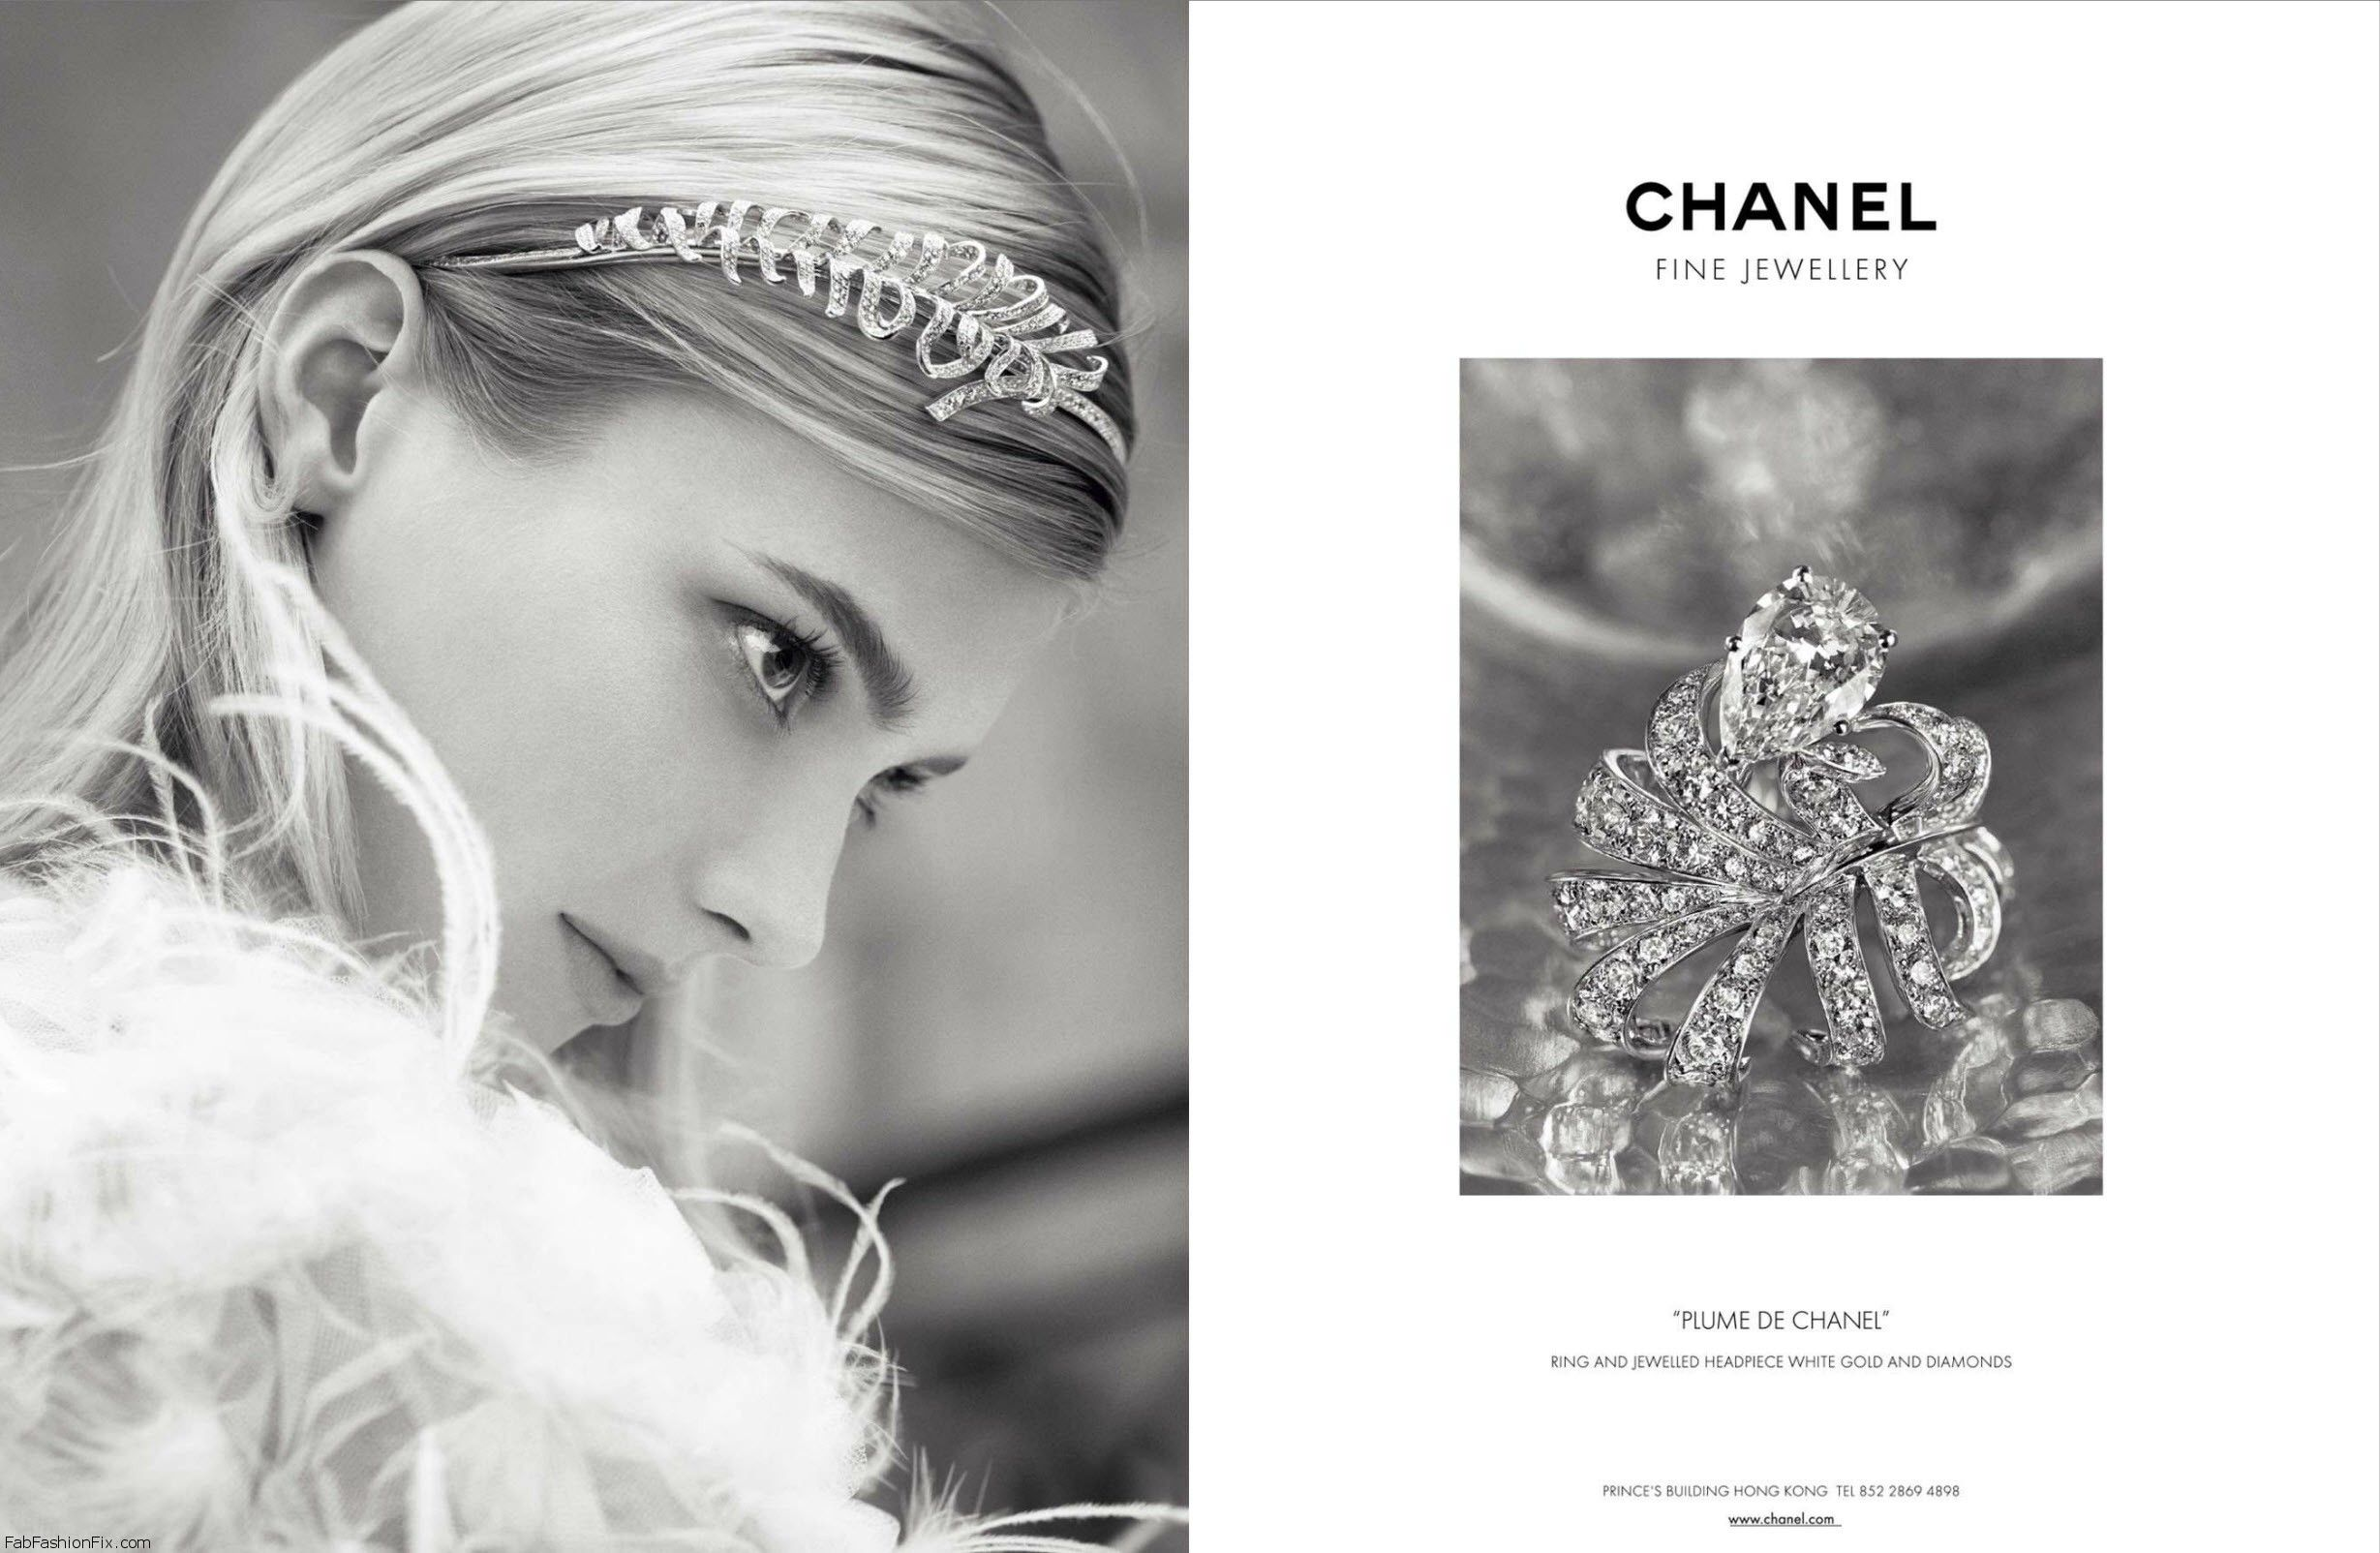 Chanel Fine Jewelry SS 2013  'Plume de Chanel' Jewelled headpiece